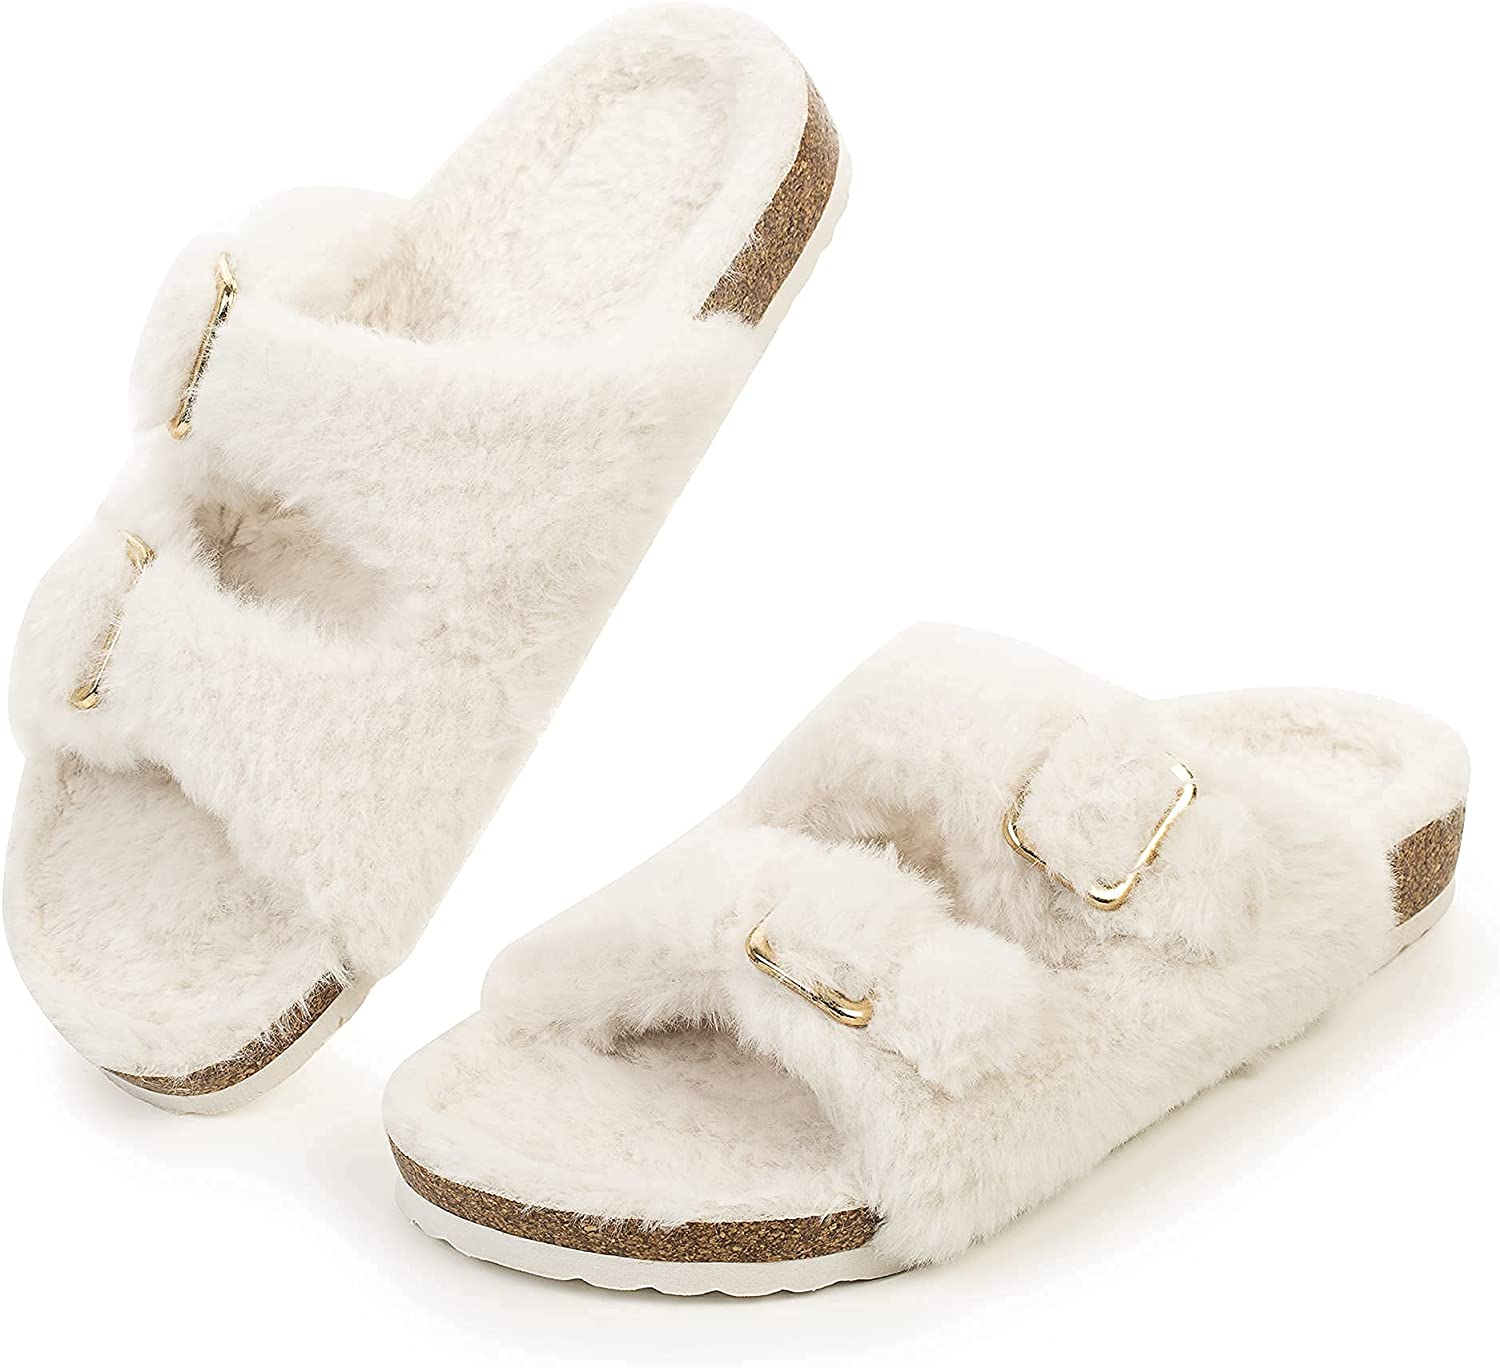 FITORY Womens Open Special Campaign Toe Slipper with Cozy Lining Faux Rabbit OFFicial site Fur